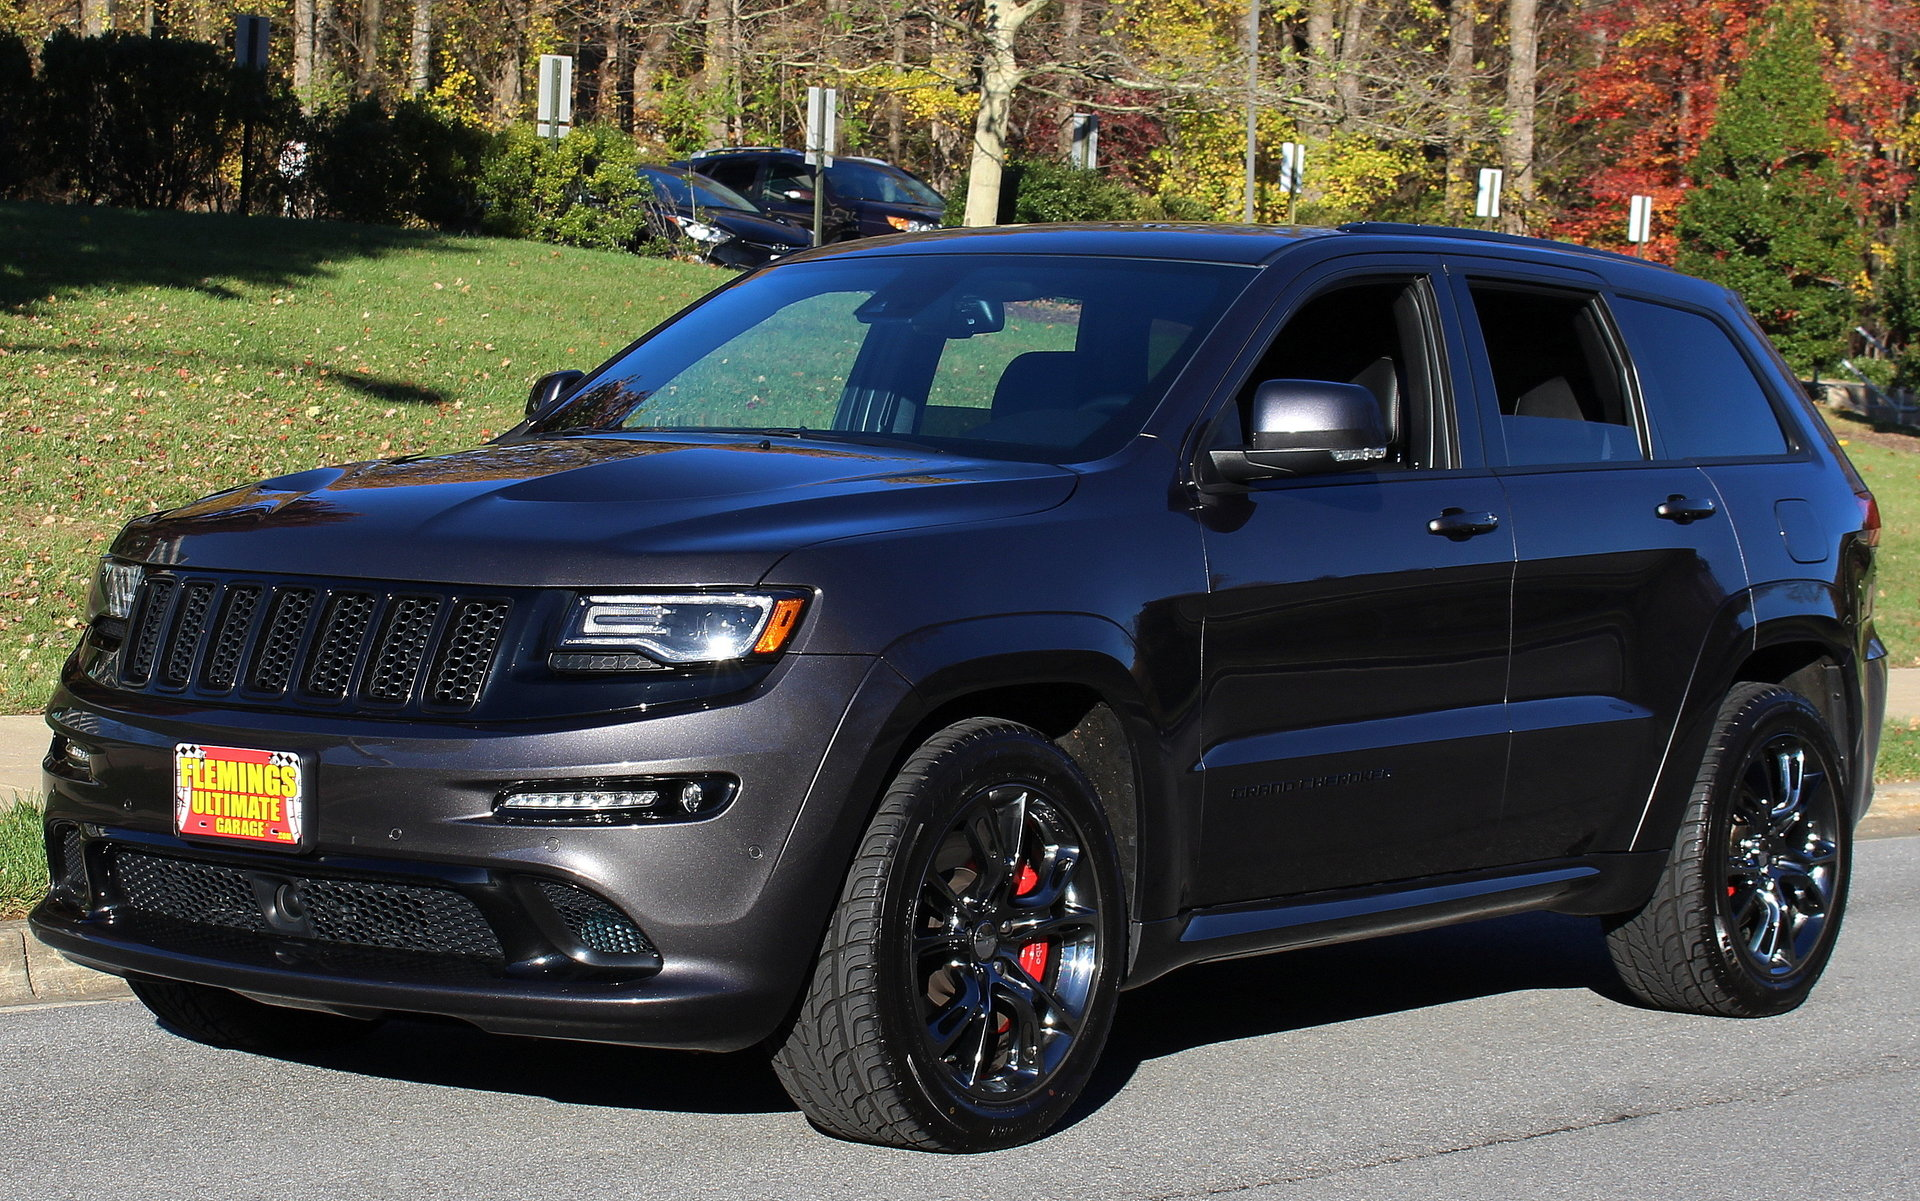 2015 jeep grand cherokee srt 8 2015 jeep grand cherokee for sale to buy or purchase srt hemi. Black Bedroom Furniture Sets. Home Design Ideas